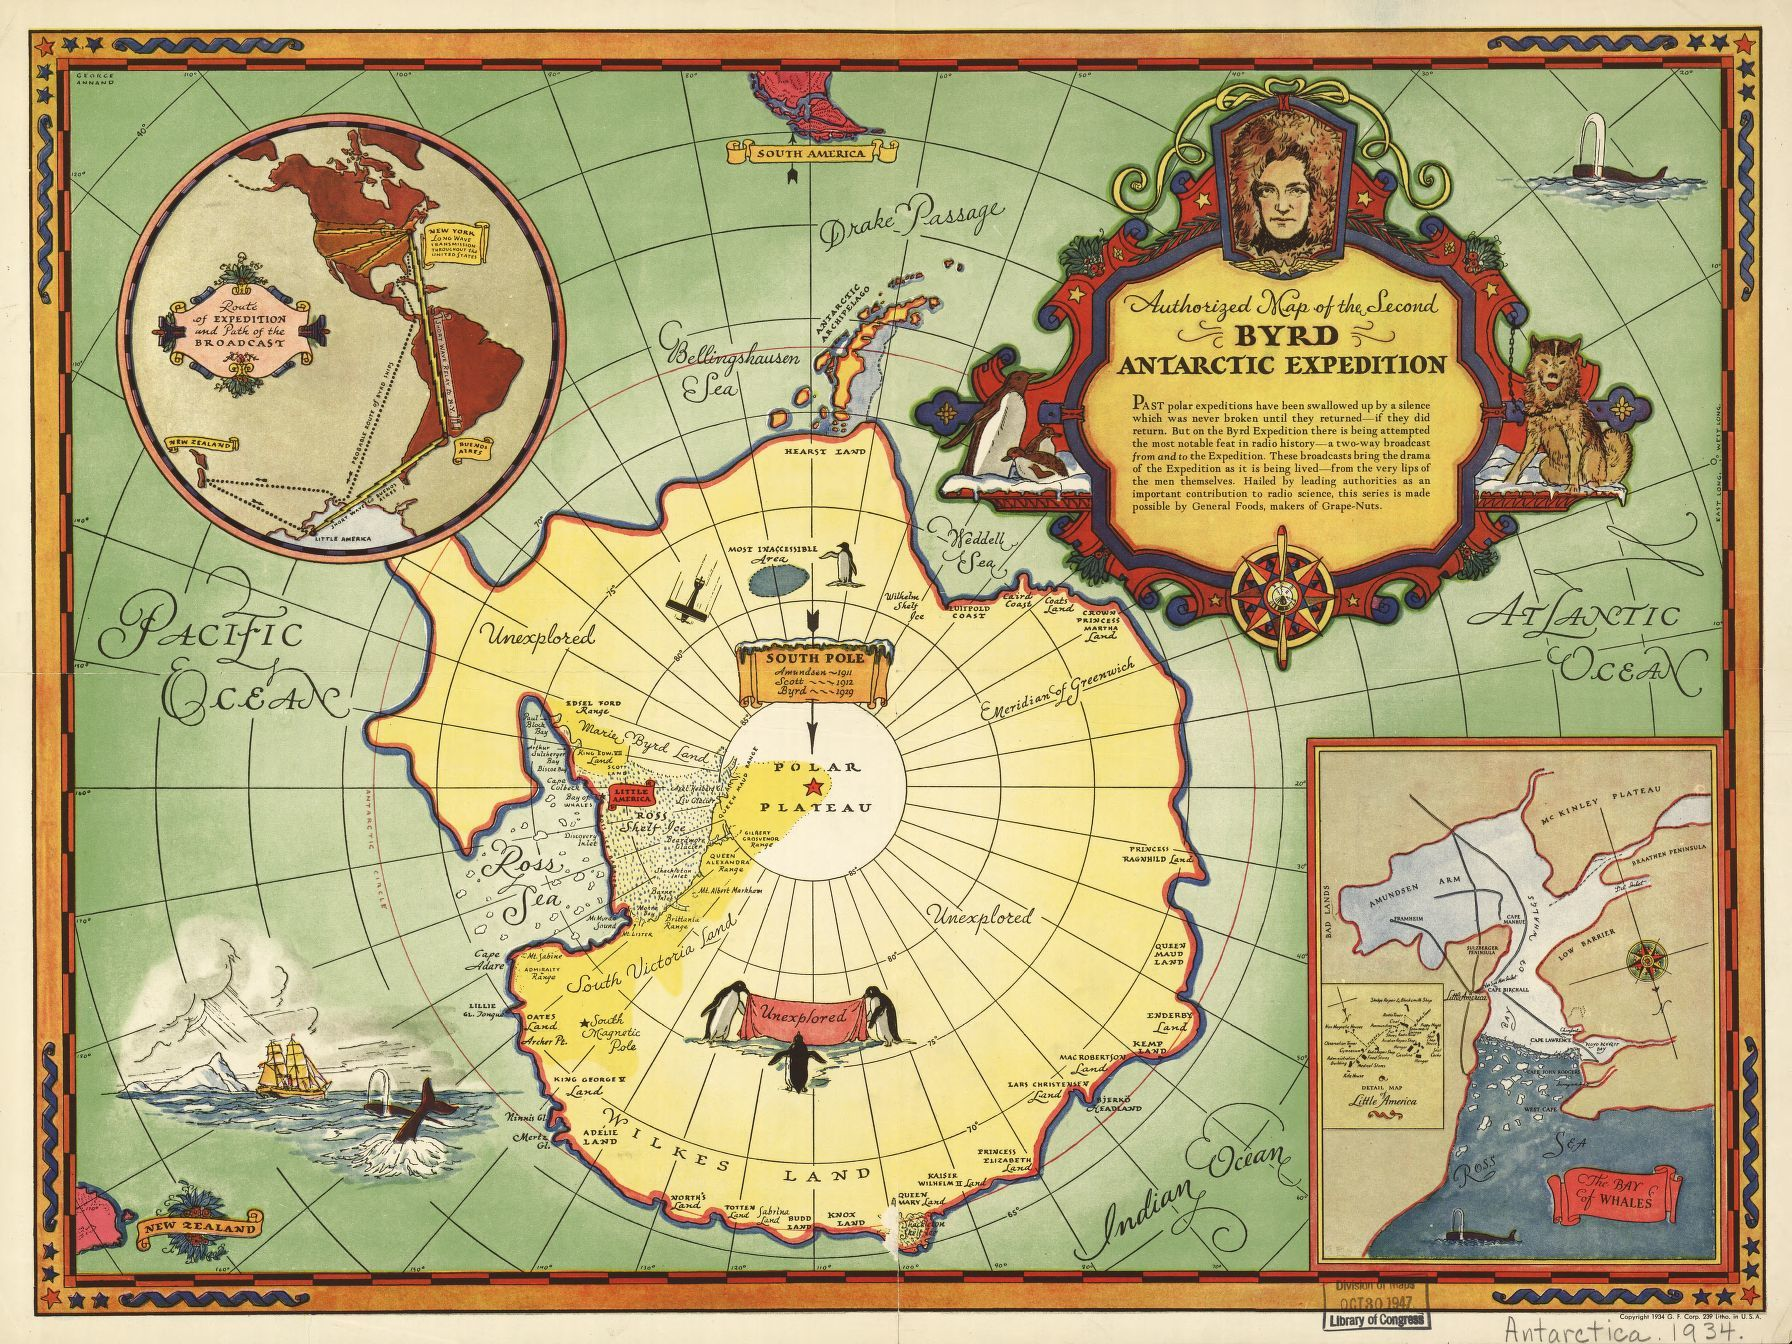 Authorized map of the Second Byrd Antarctic Expedition